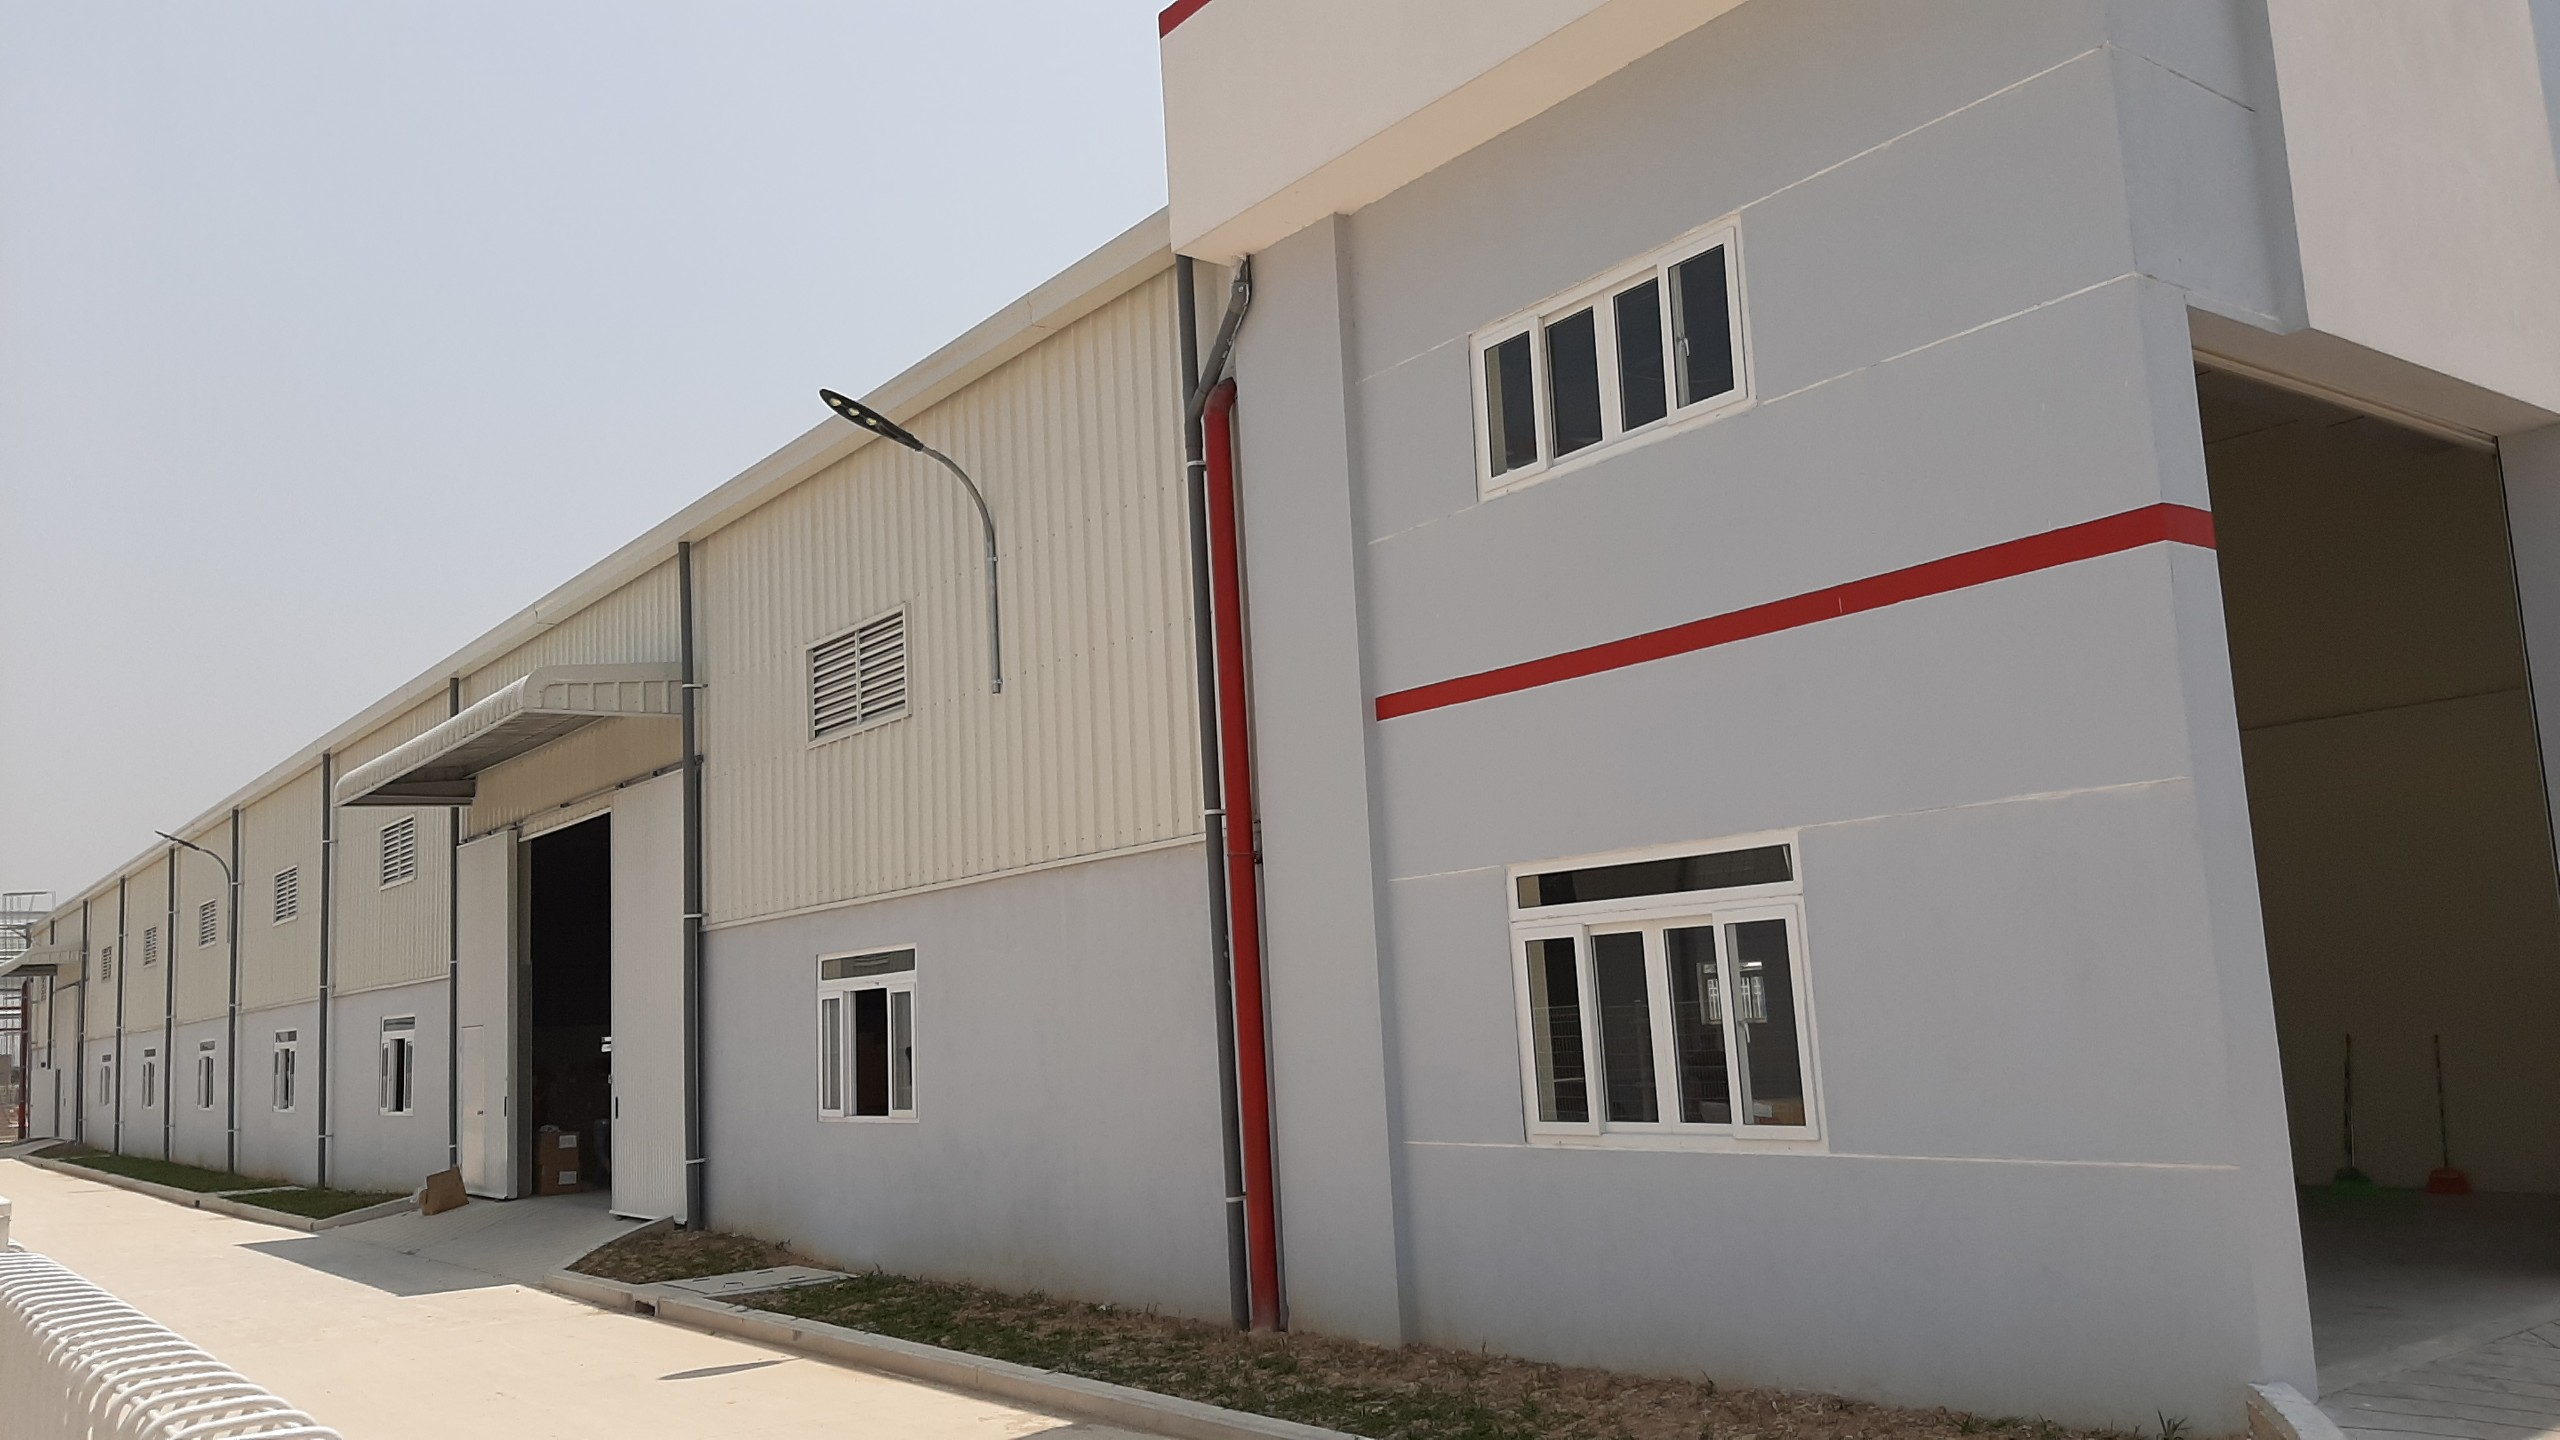 Factory for Lease in Yen Phong Industrial Park, Bac Ninh Province